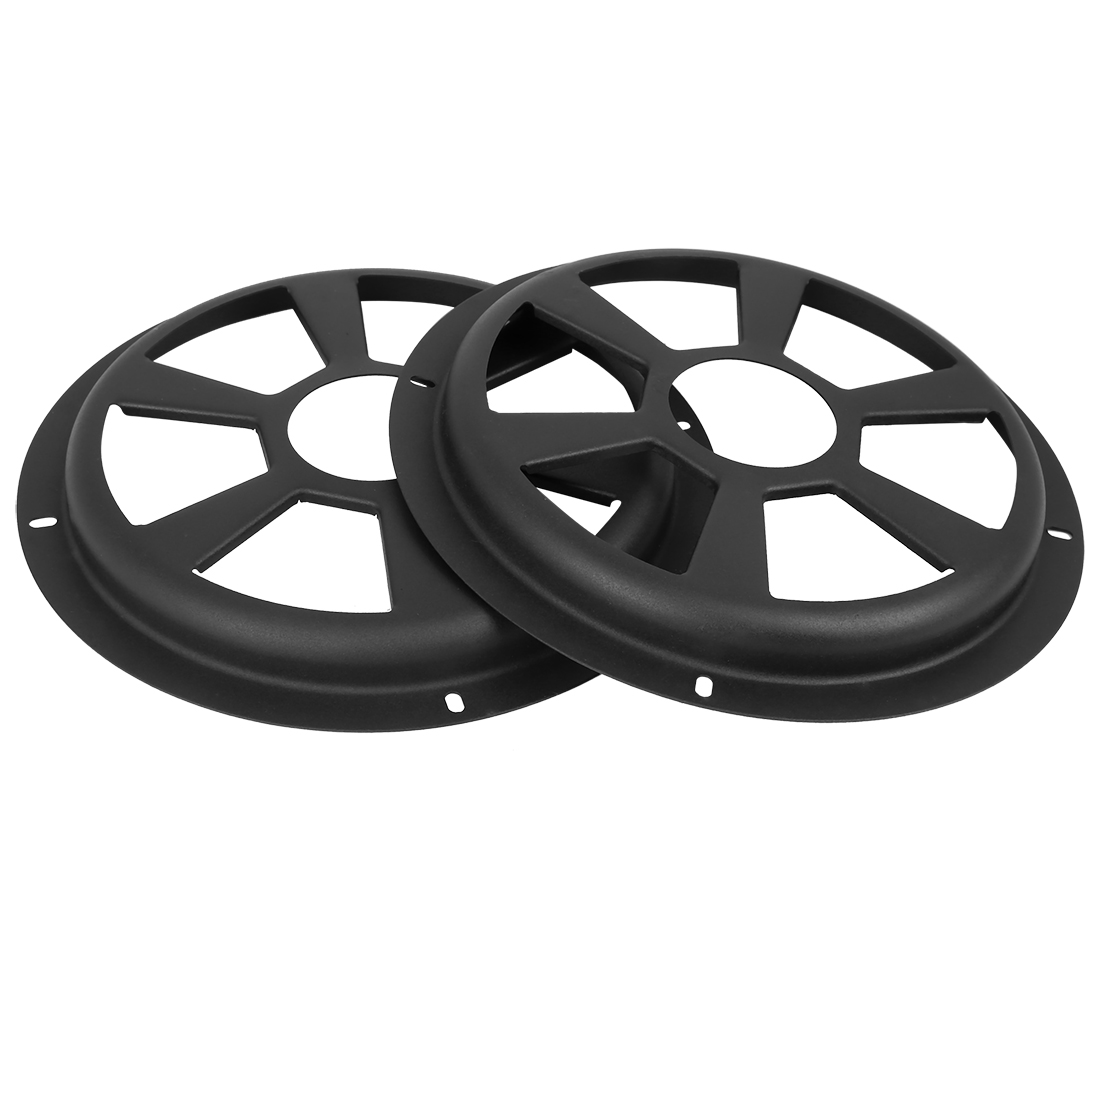 2pcs 8 Inch Black Car Audio Speaker Cover Hollow Mesh Subwoofer Grill Horn Guard